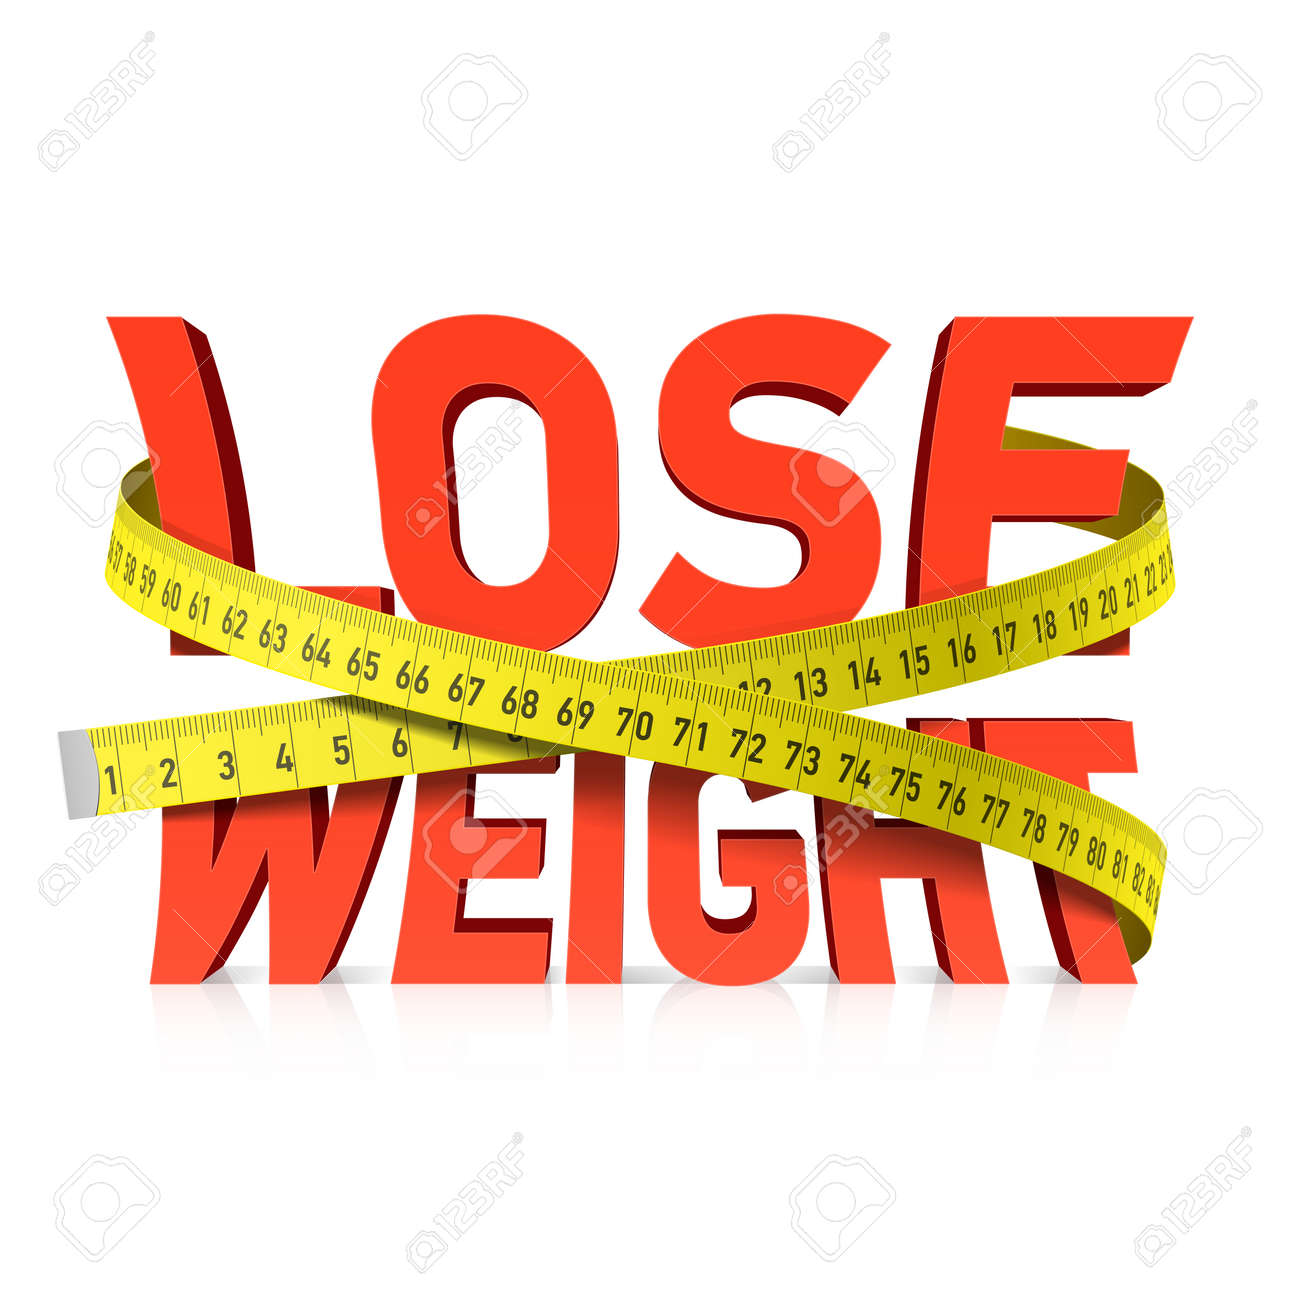 Lose weight word with measuring tape concept - 33664692